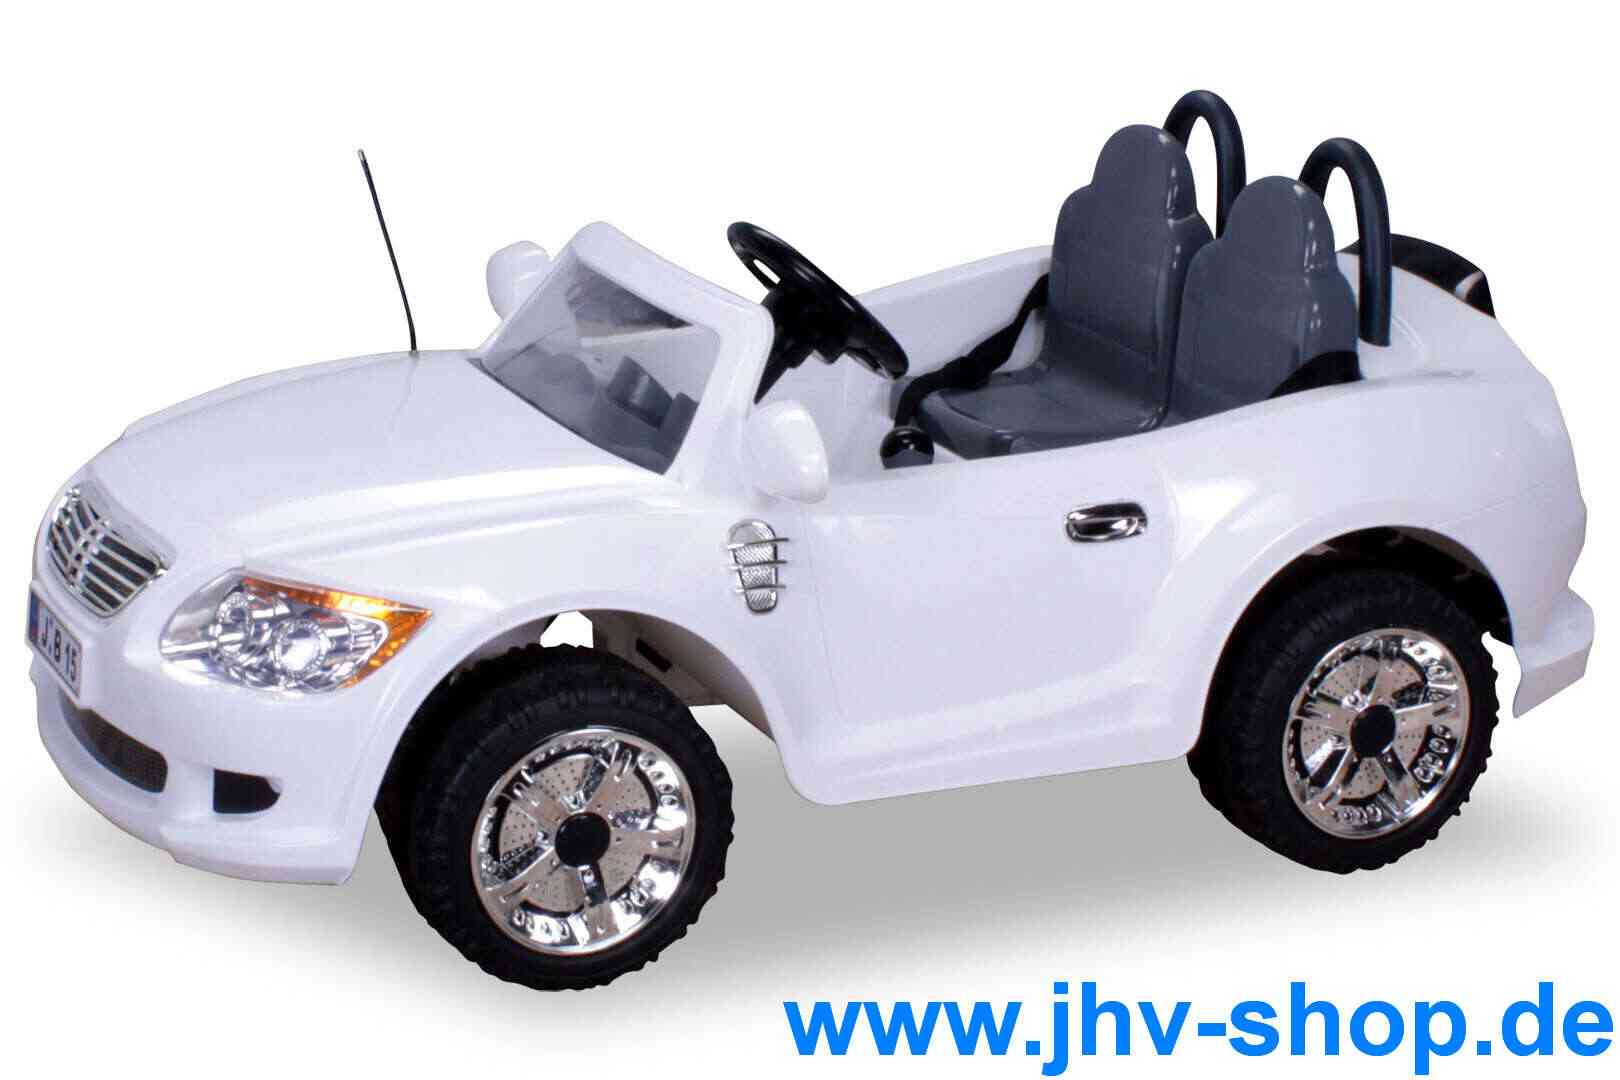 jhv shop quad bikes und mehr kinder hummer. Black Bedroom Furniture Sets. Home Design Ideas